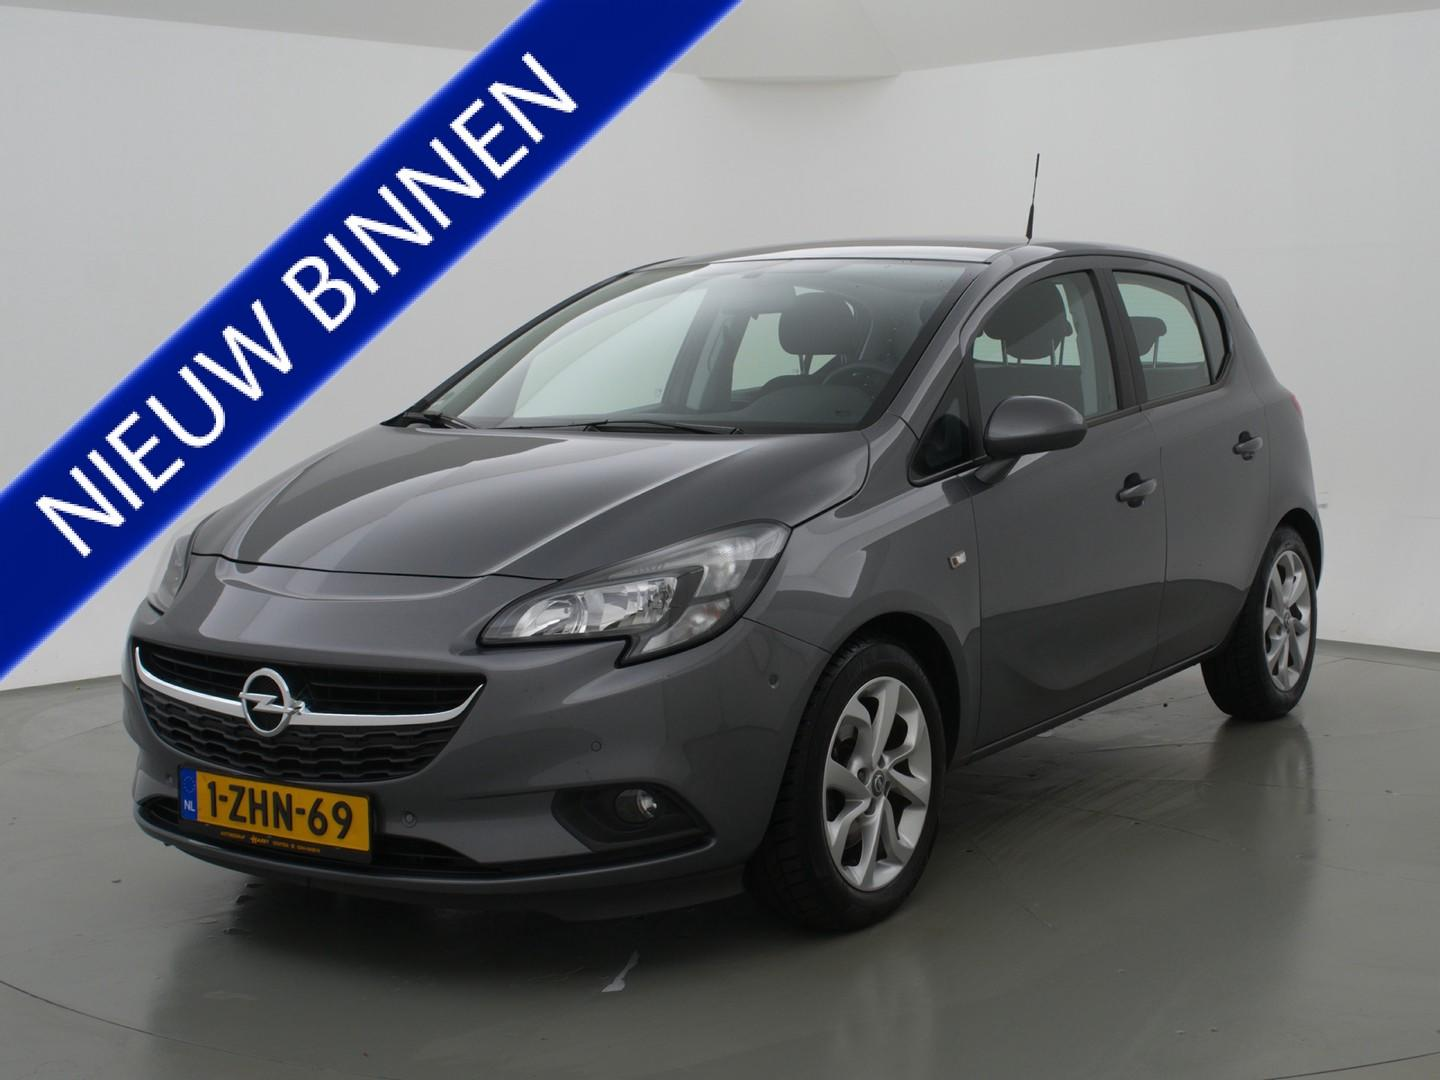 Opel Corsa 1.0 turbo 90 pk edition + camera / dab / dode hoek / cruise control